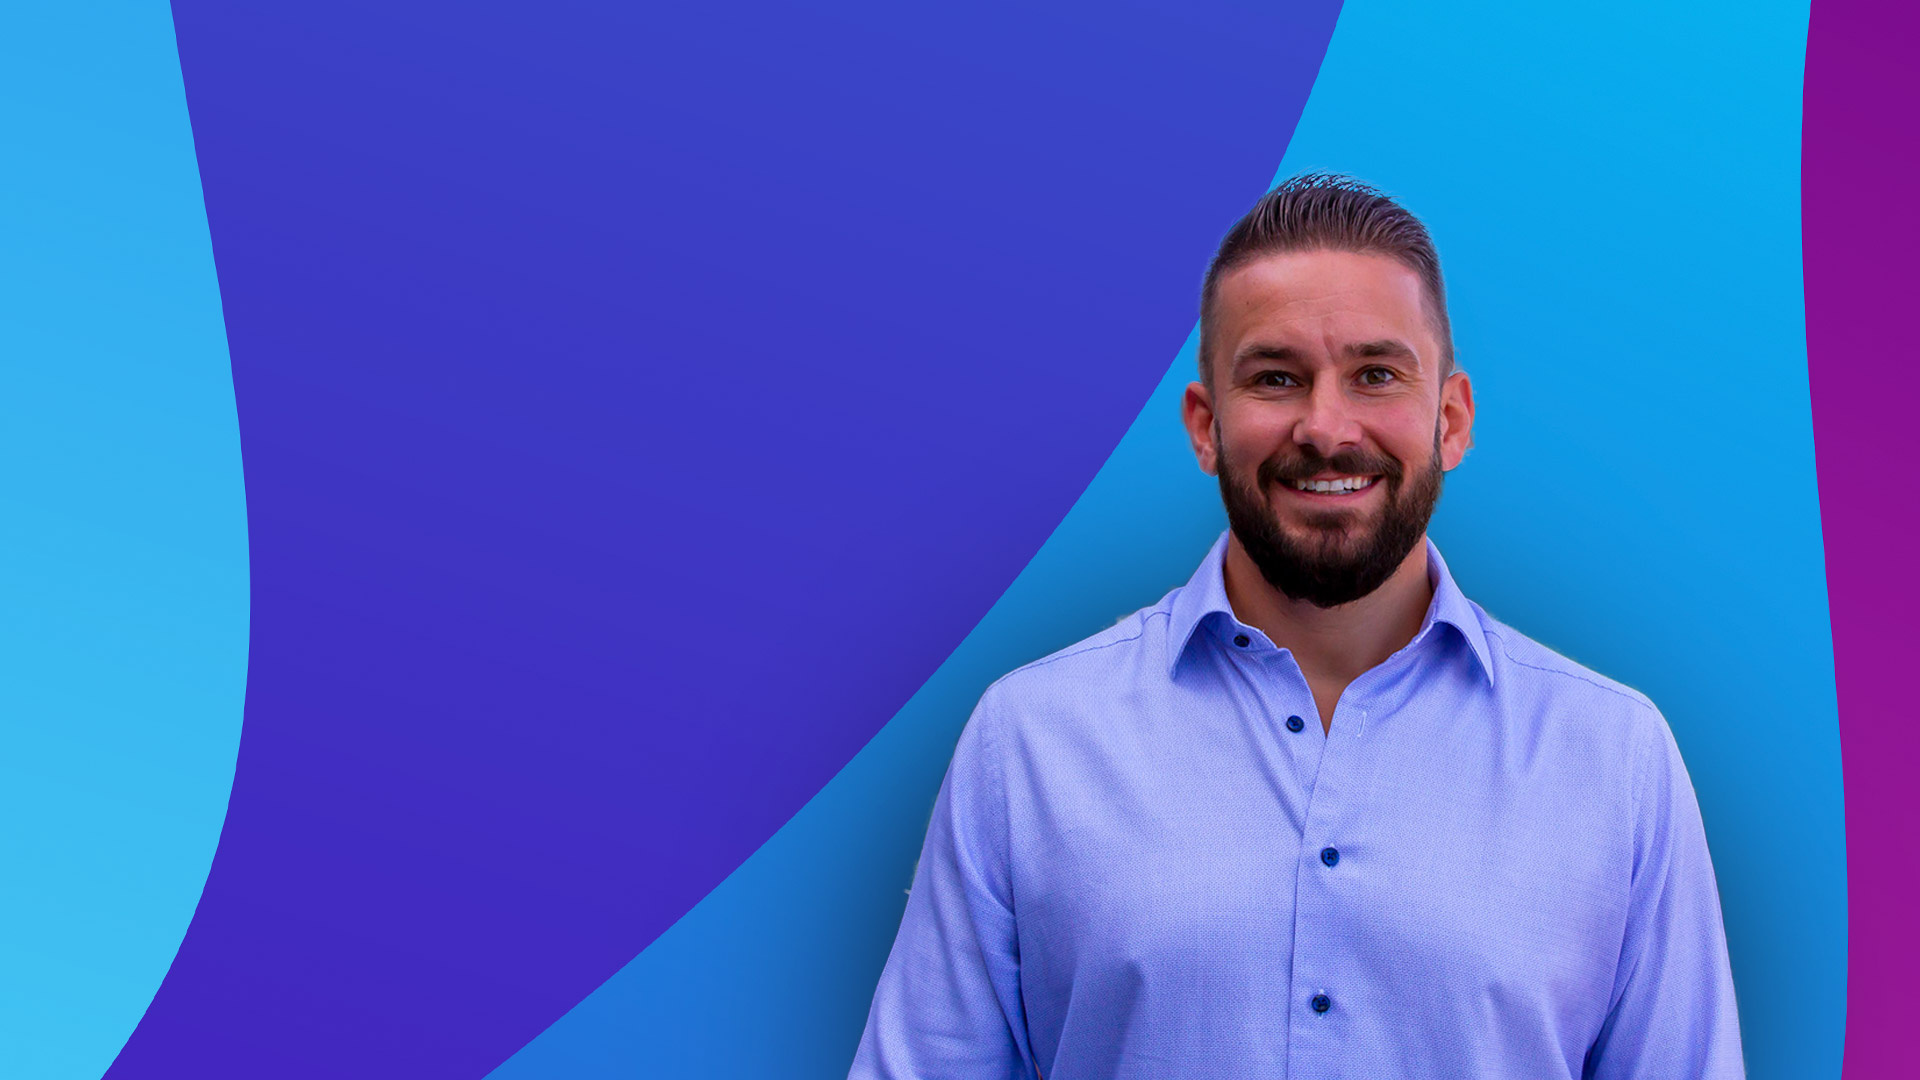 Octopi Commerce Announces Patrick Blickman as CEO, Charted to Lead REACH™ by Octopi Strategic Partnerships into 2021